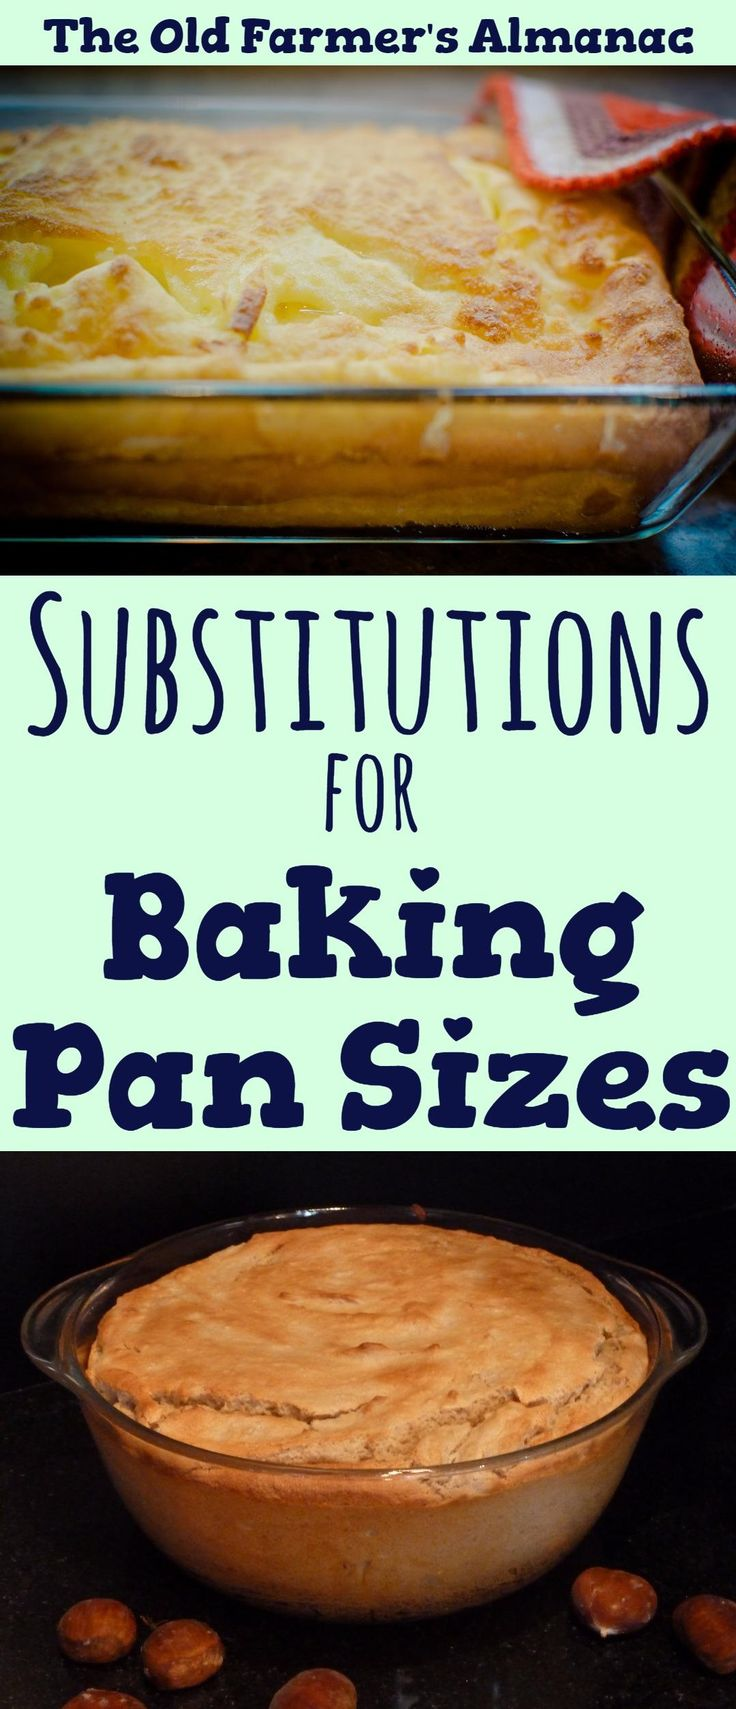 Chart for Baking Pan Sizes and Substitutions from The Old Farmer's Almanac.